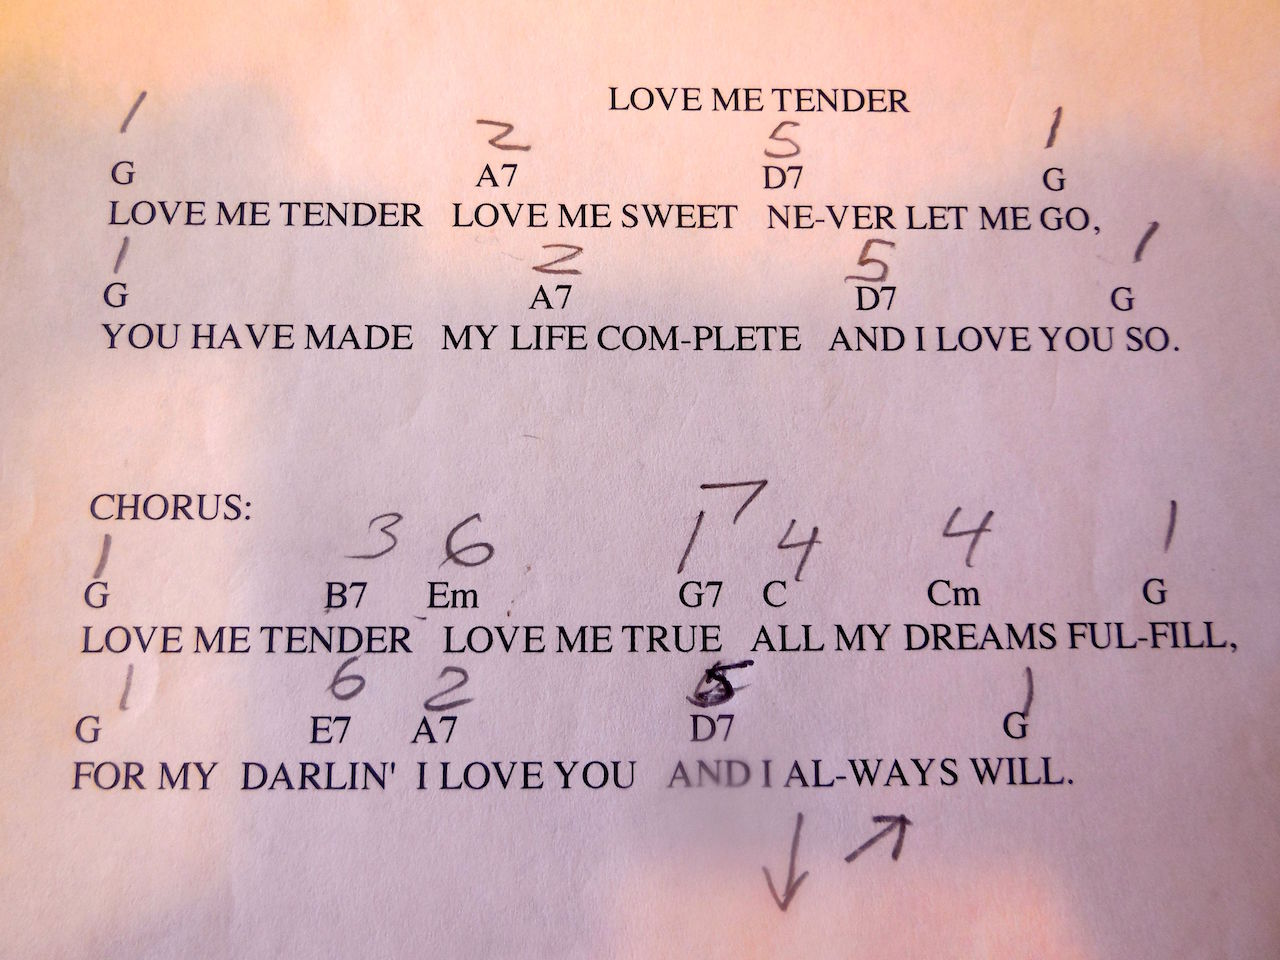 love me tender lyrics